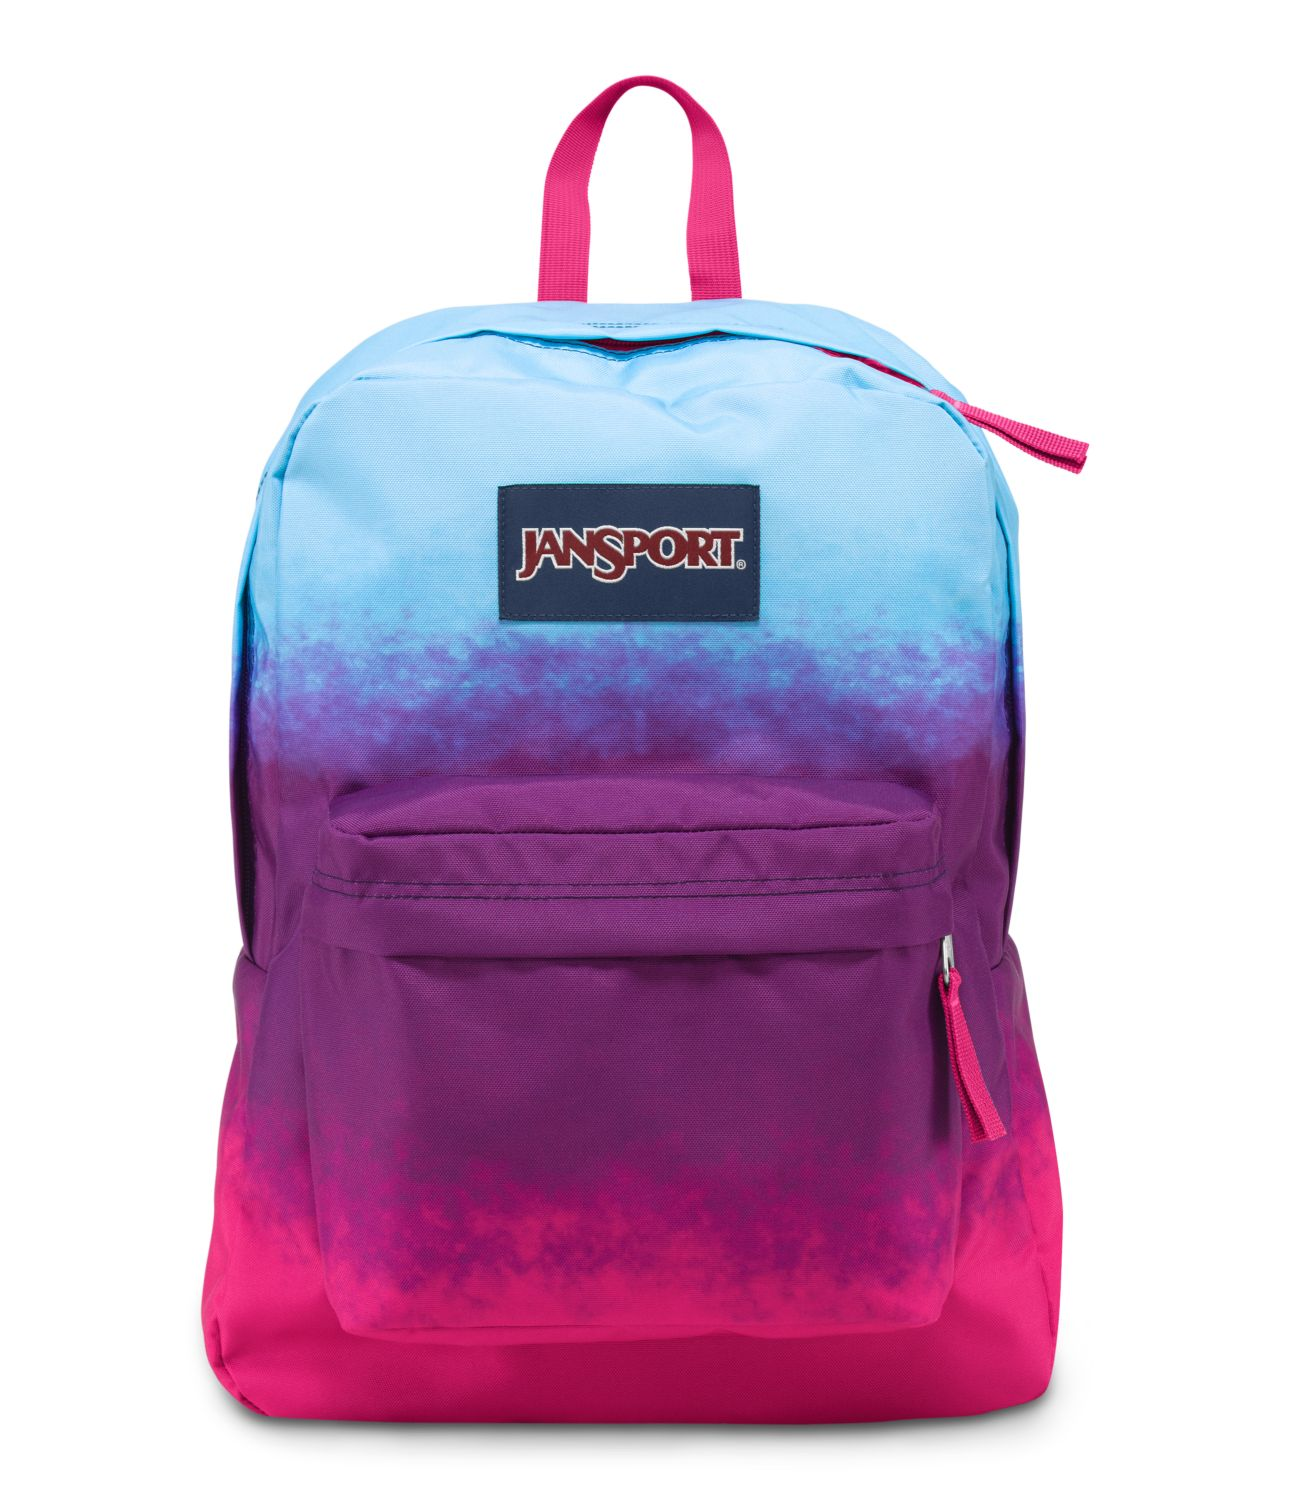 Jansport School Backpacks f4eNroto